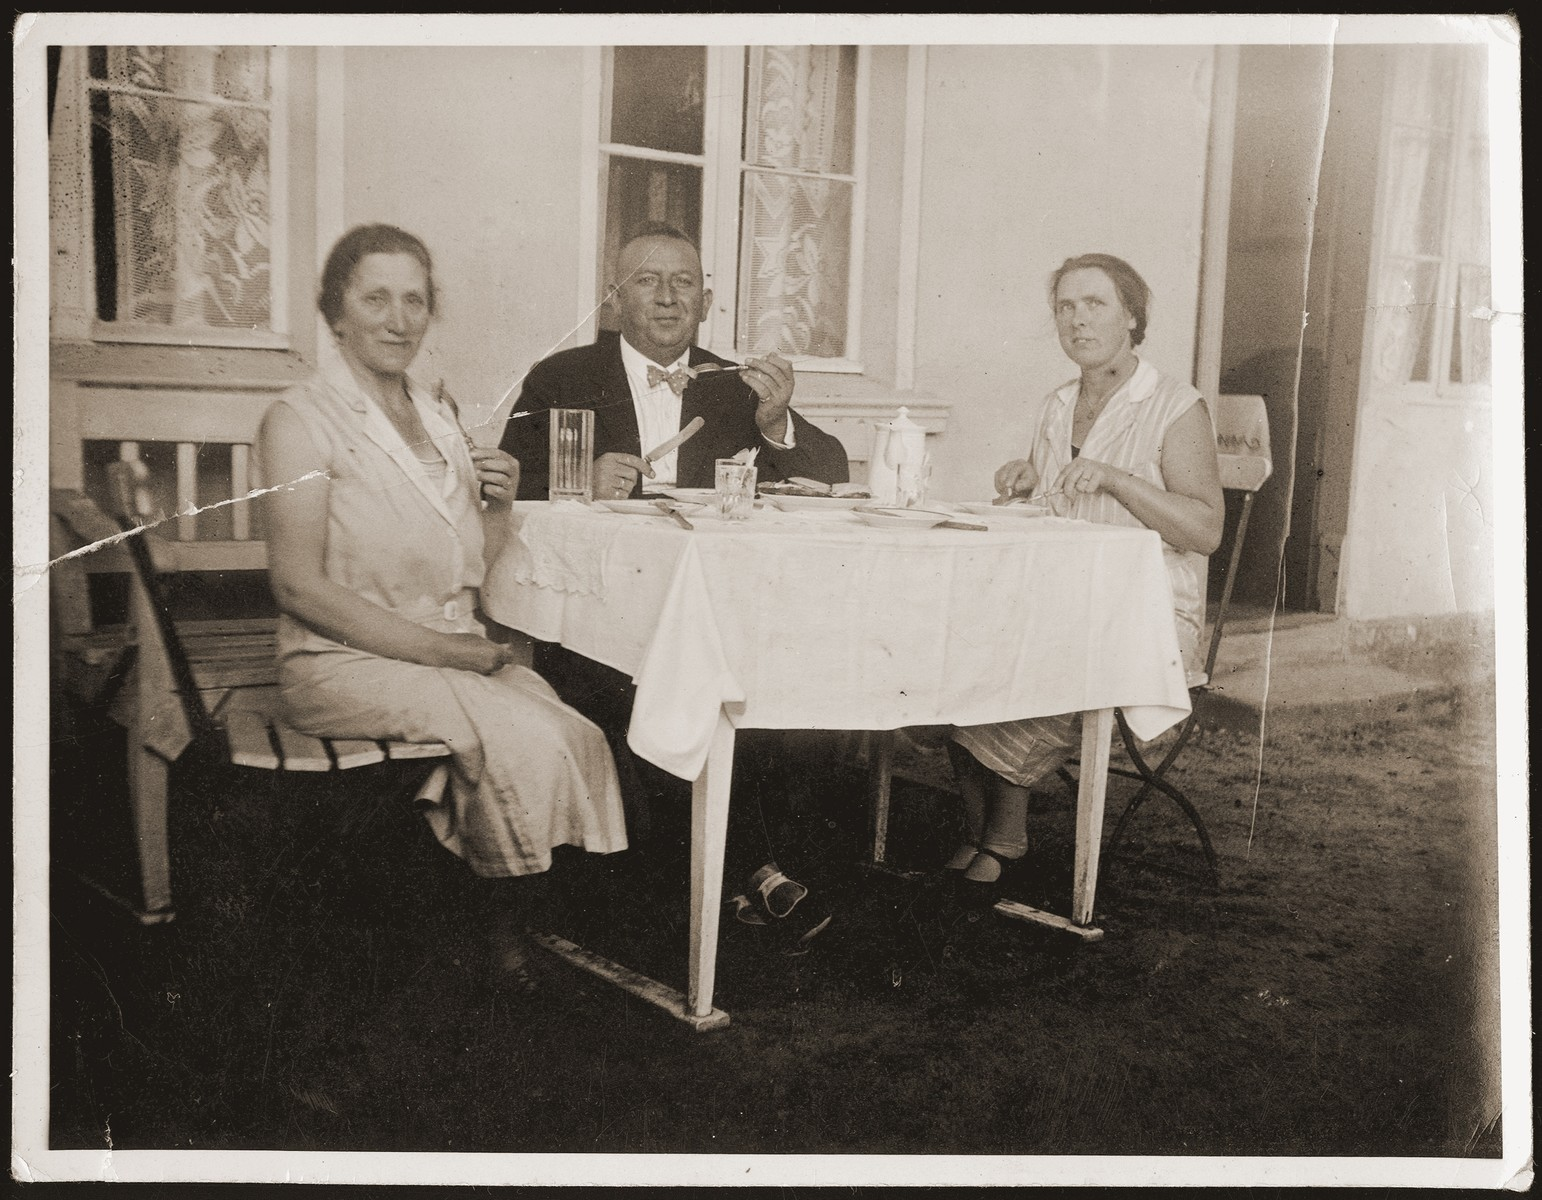 Siegfried and Betti Jacobsberg eat a meal in their garden with their German maid, Minna.